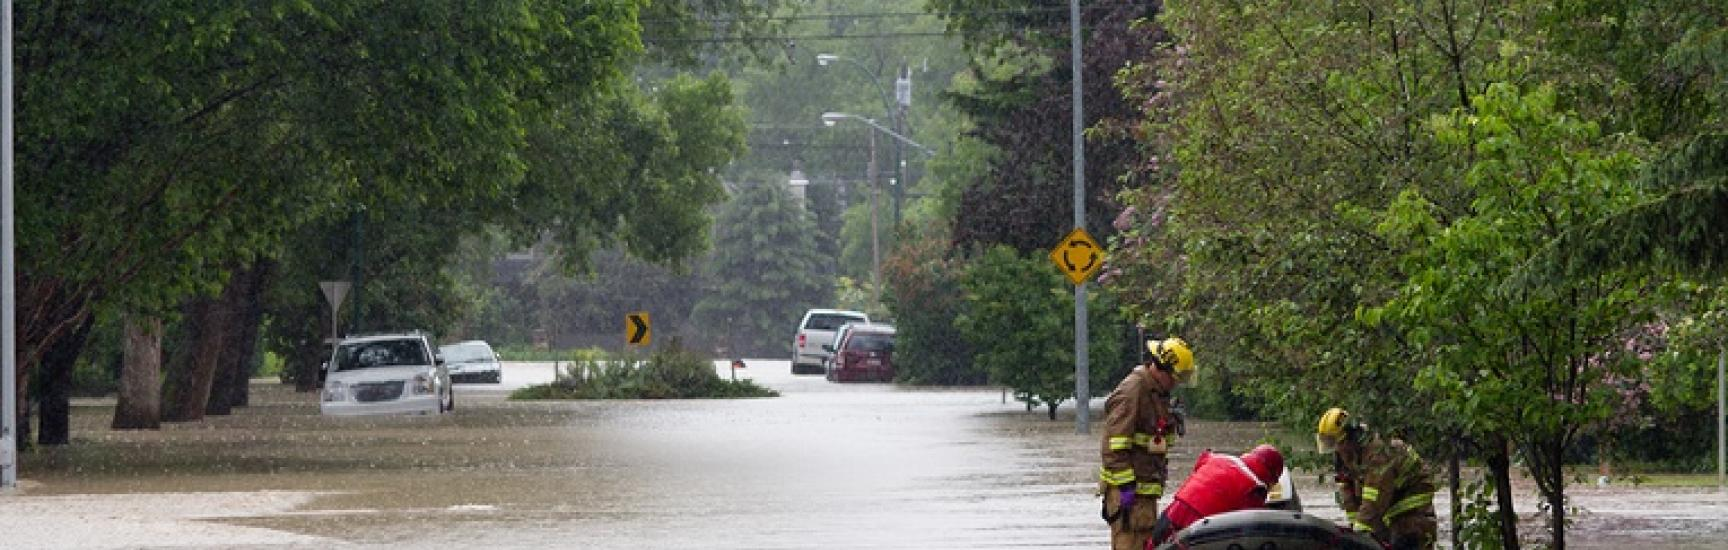 Insurance Perspective: Preparing for a Natural Disaster in Canada